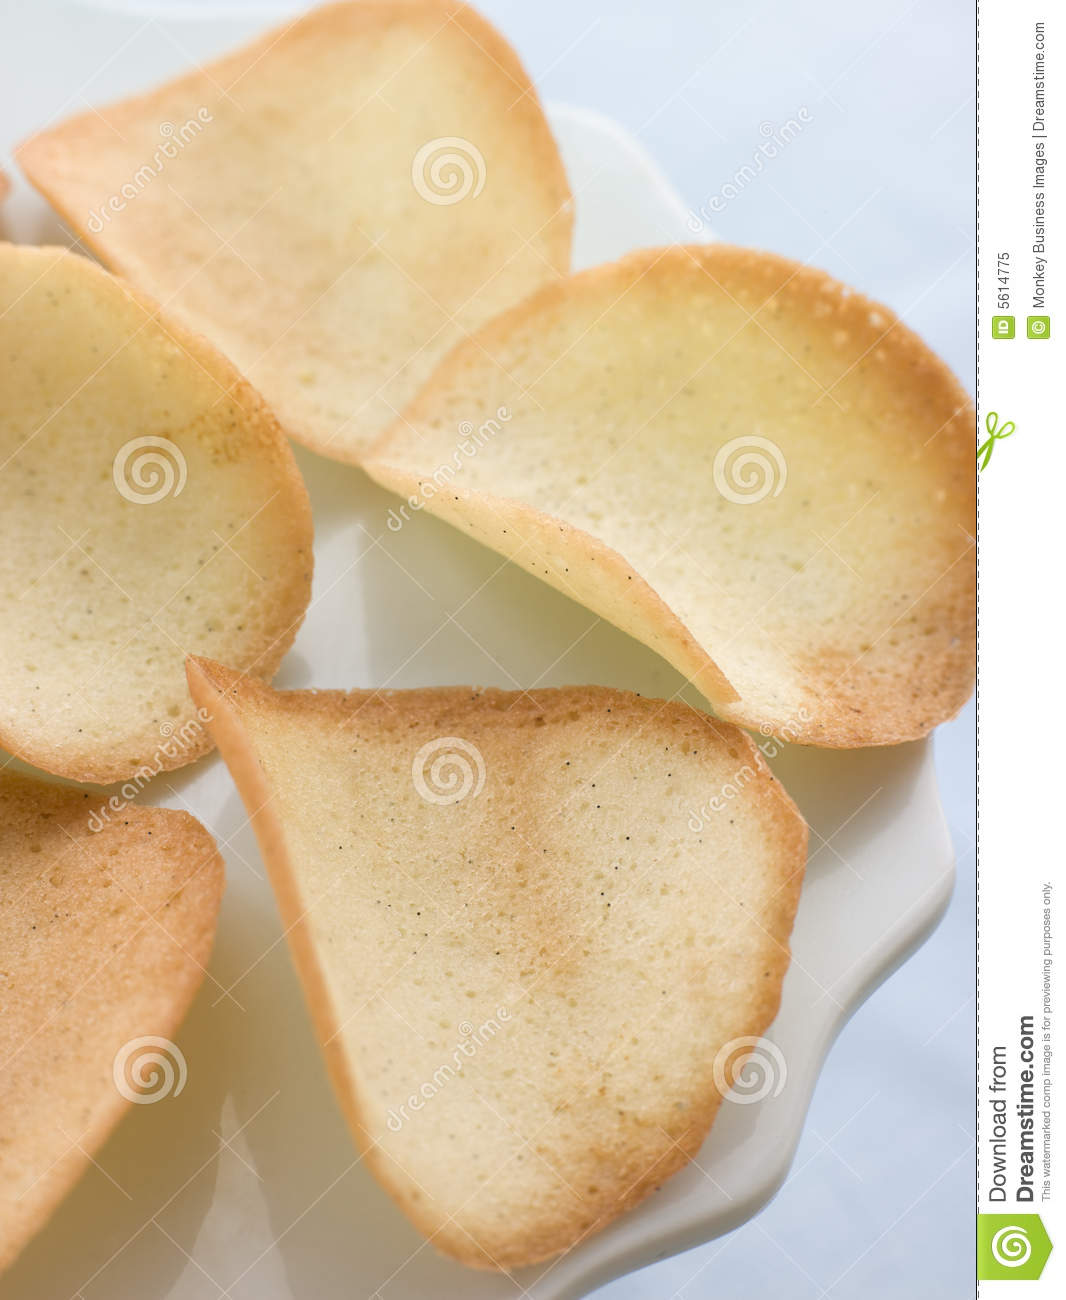 11 Biscuits Tuile Photos - Free & Royalty-Free Stock Photos from Dreamstime